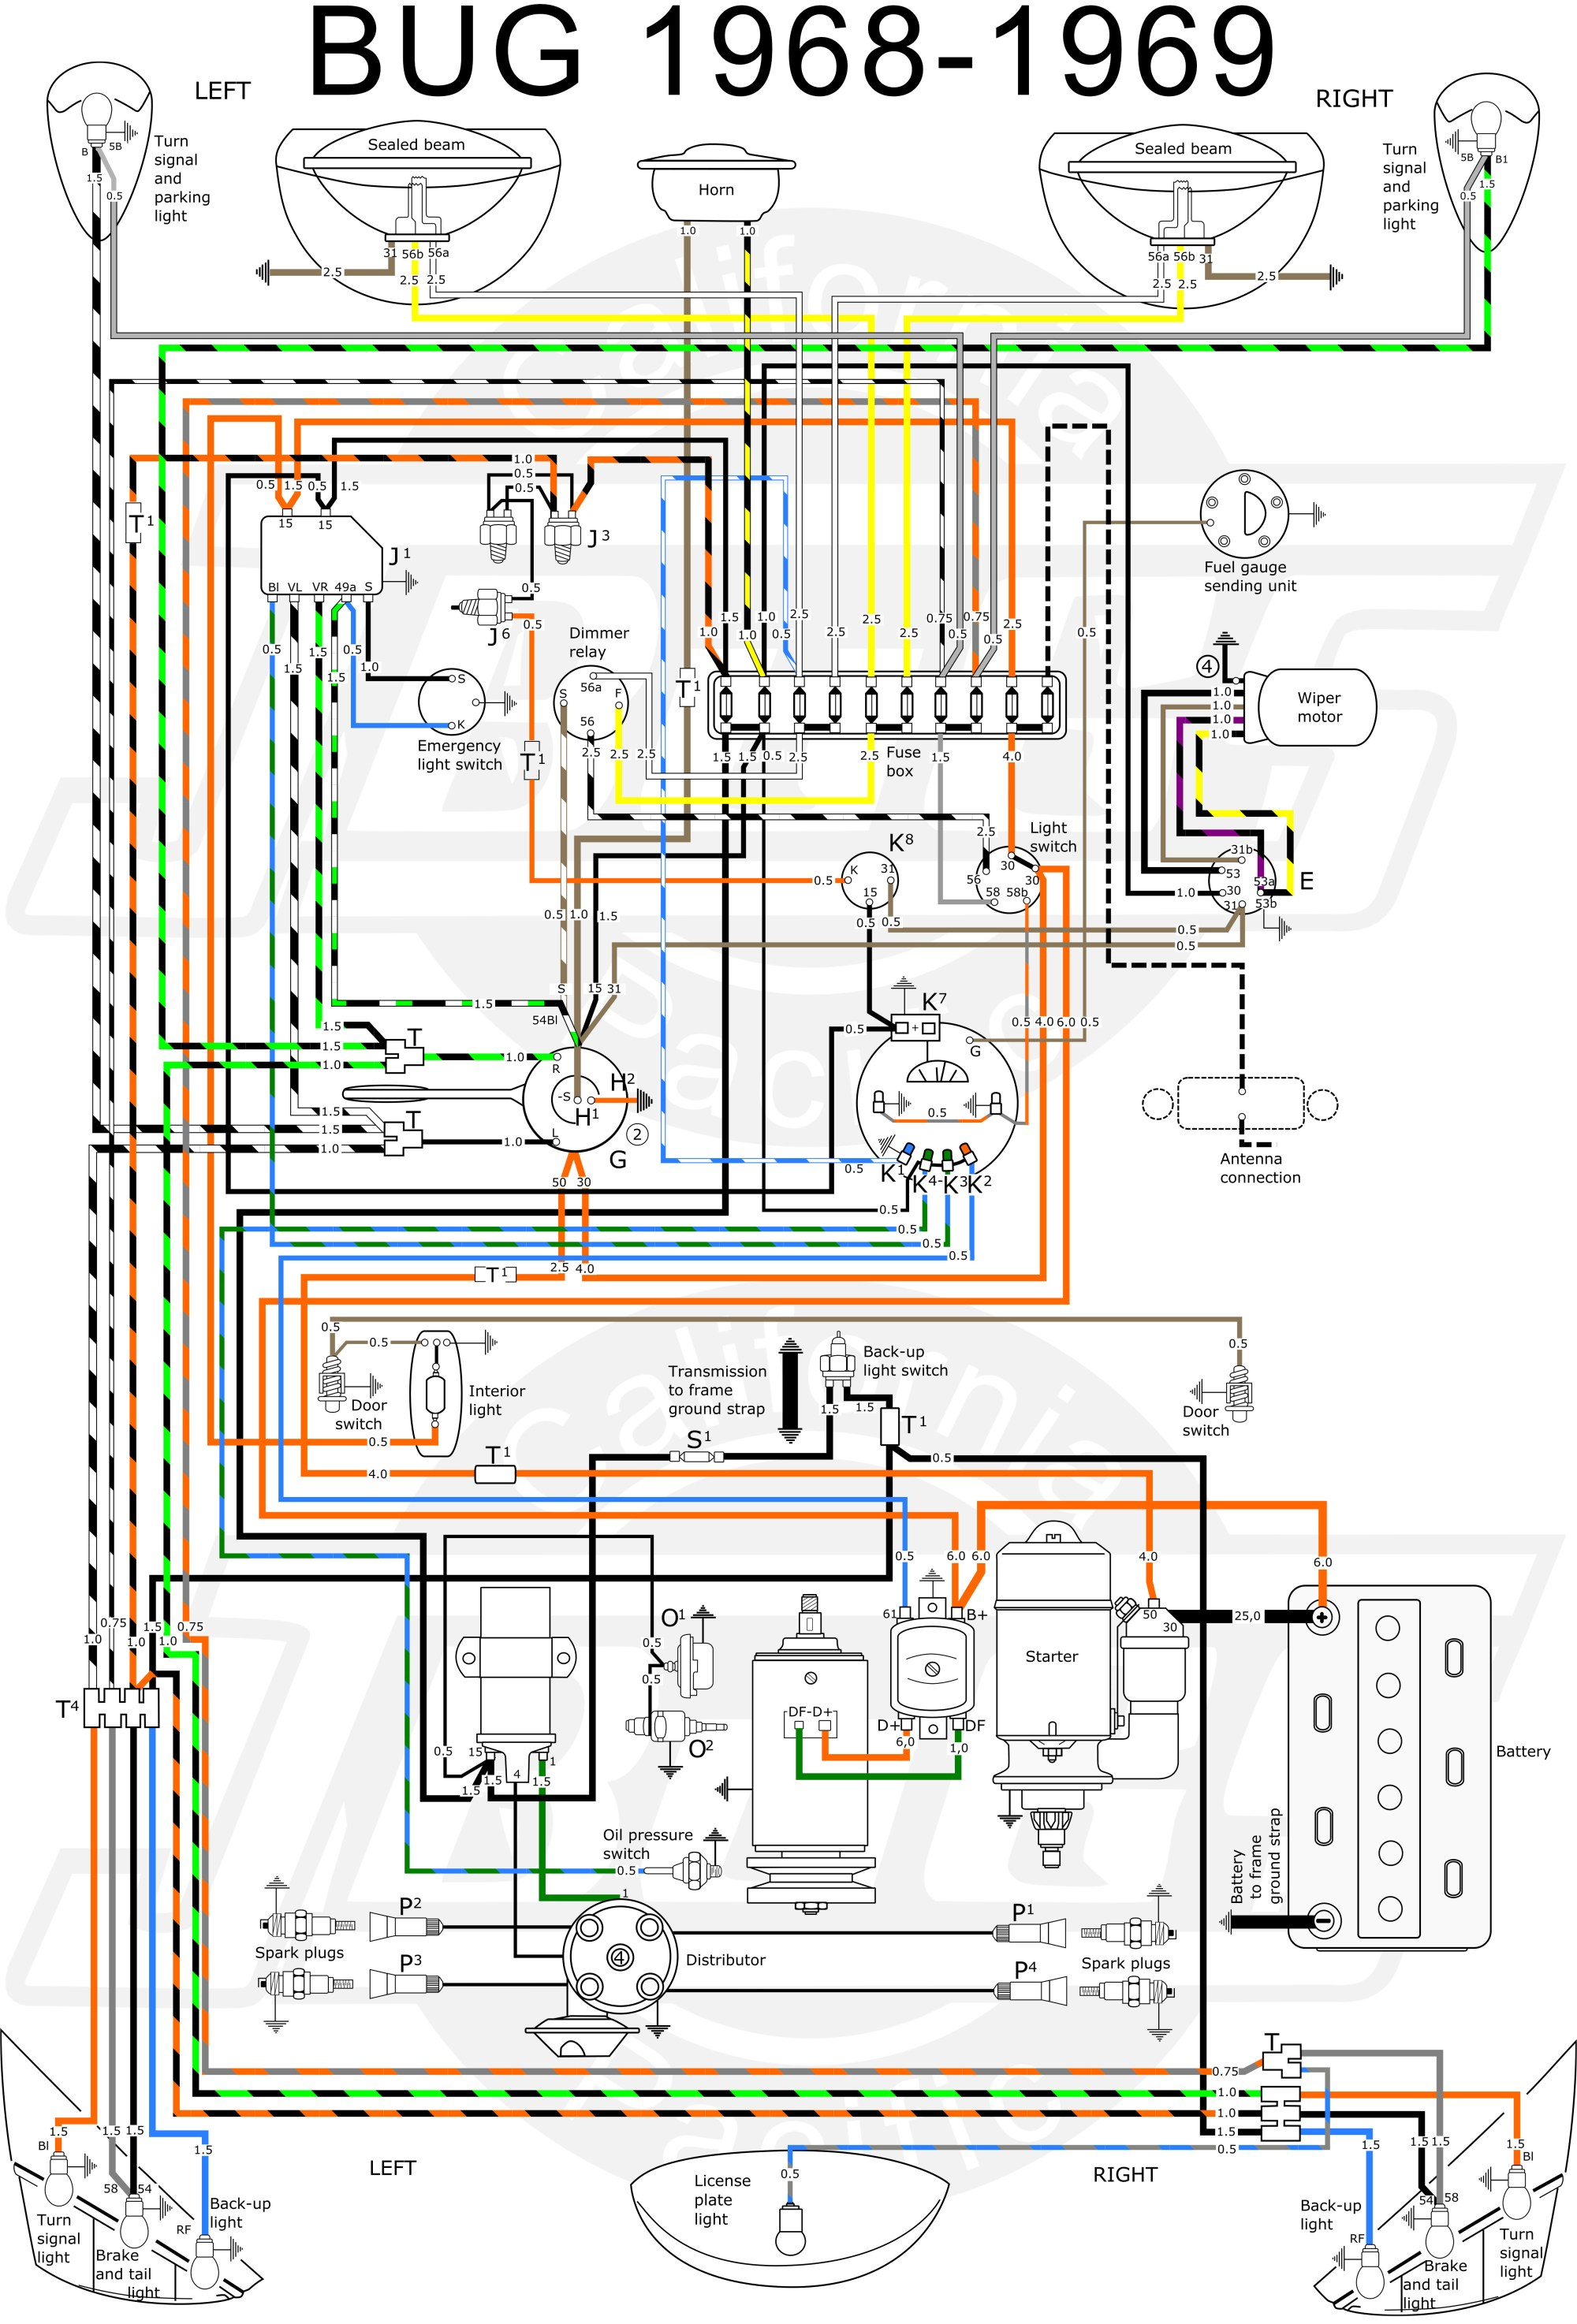 hight resolution of 1968 vw bug wiring diagram wiring diagram post 68 vw bug fuse diagram